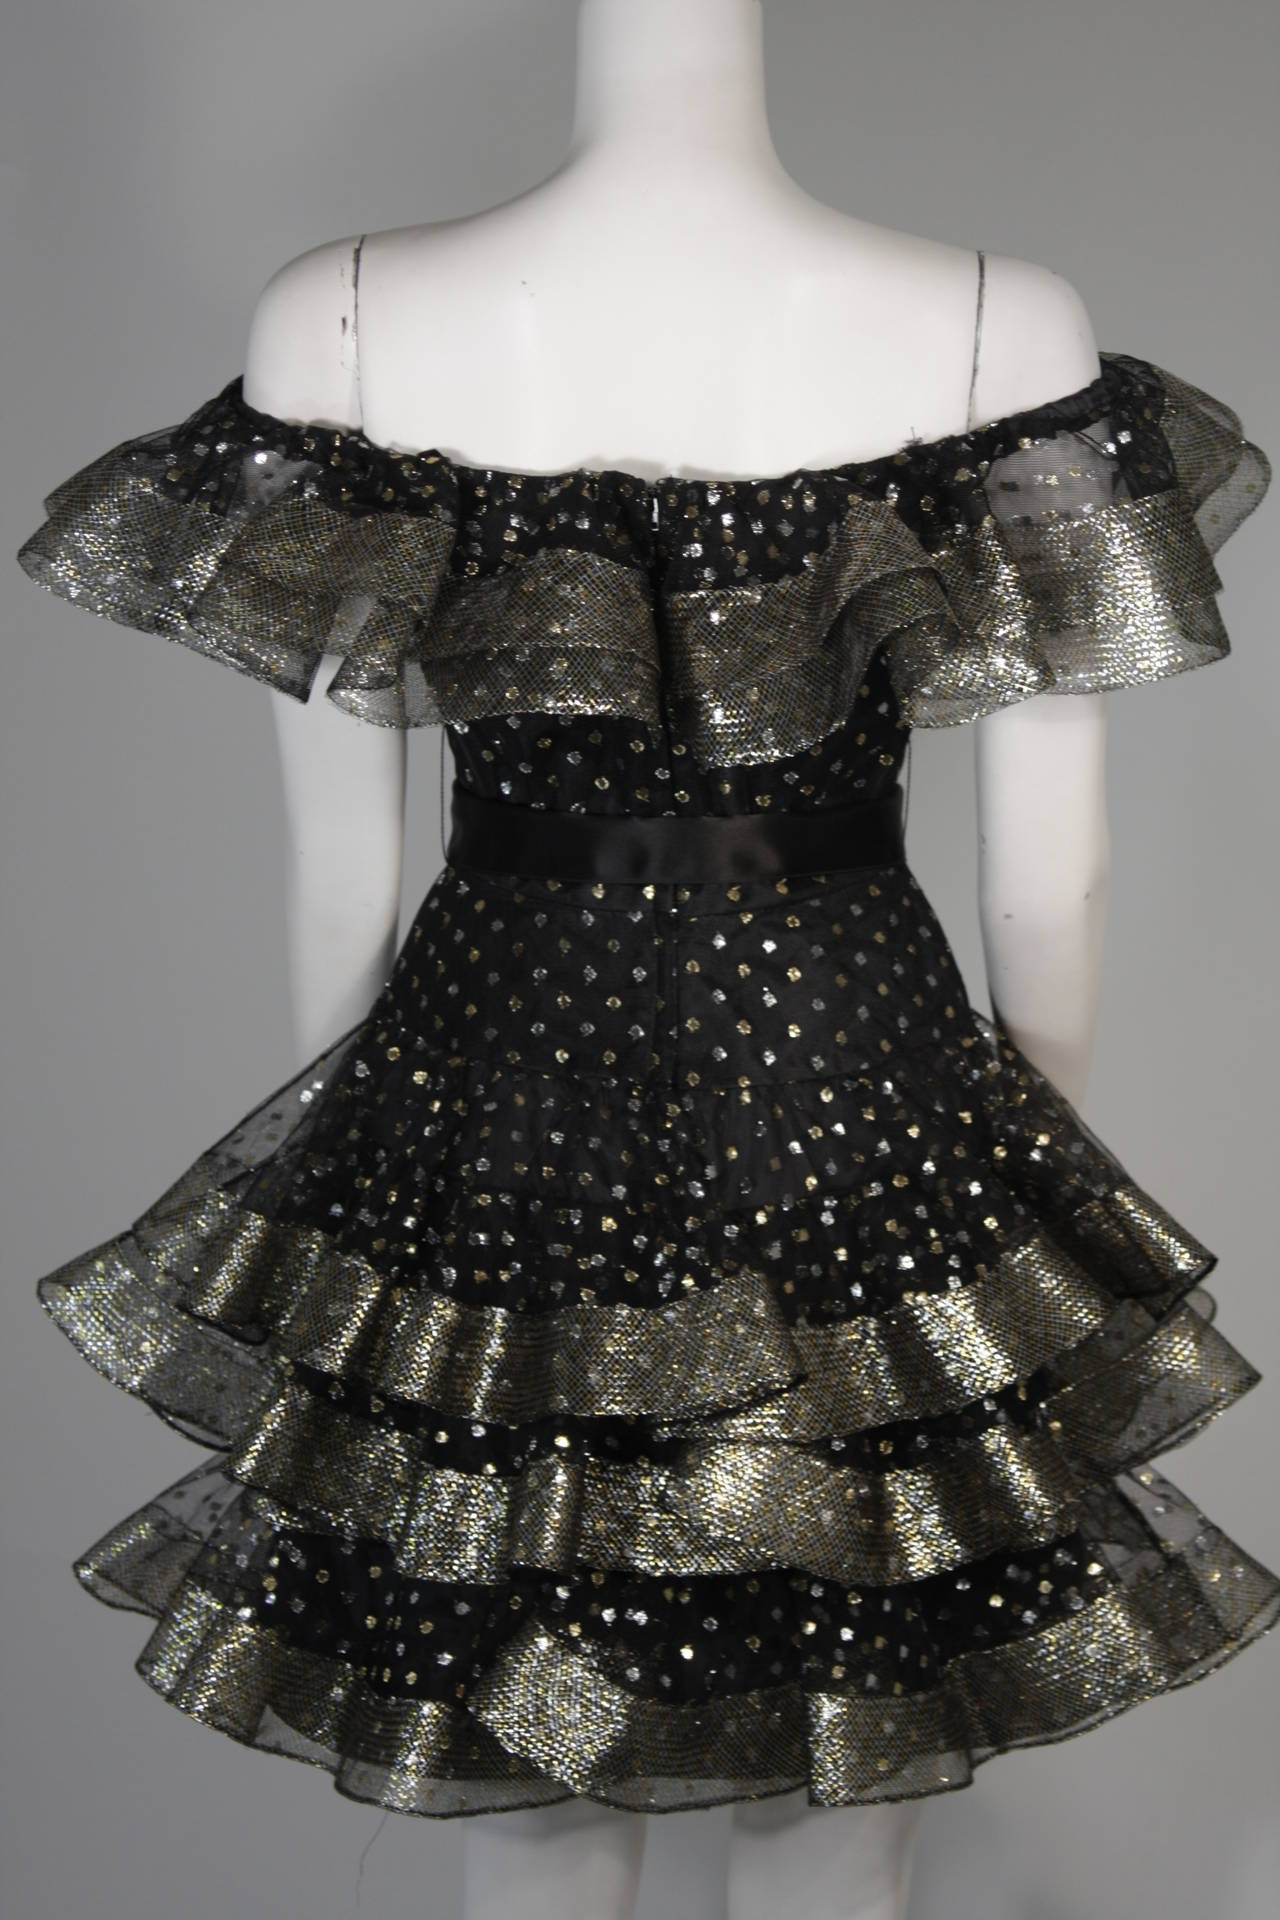 Victor Costa Black Ruffled Cocktail Dress with Silver and Gold Polka Dots Size 2 For Sale 5